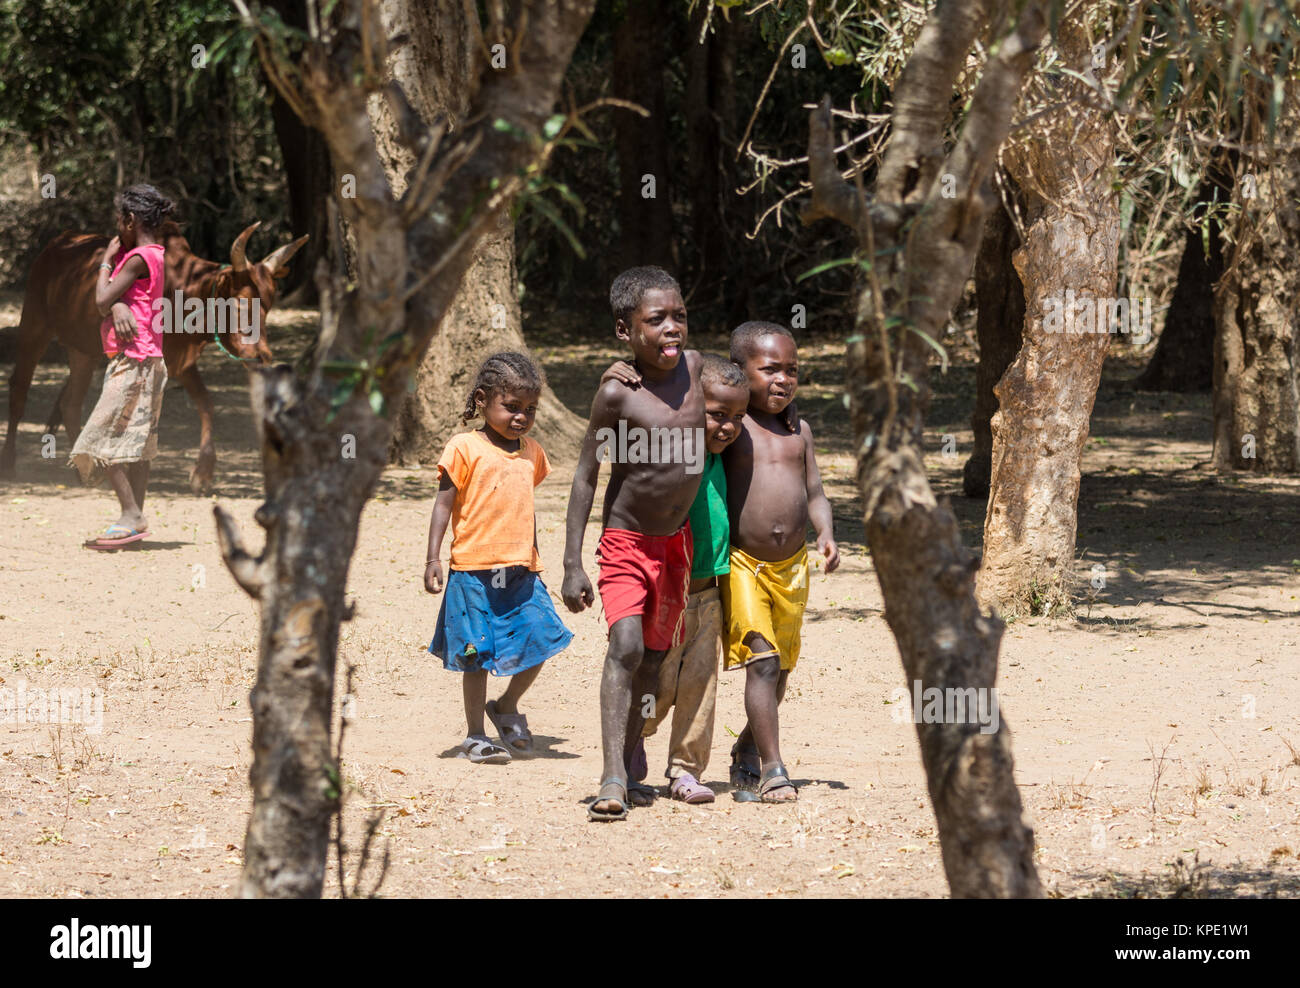 Malagasy kids in the village. Madagascar, Africa. - Stock Image